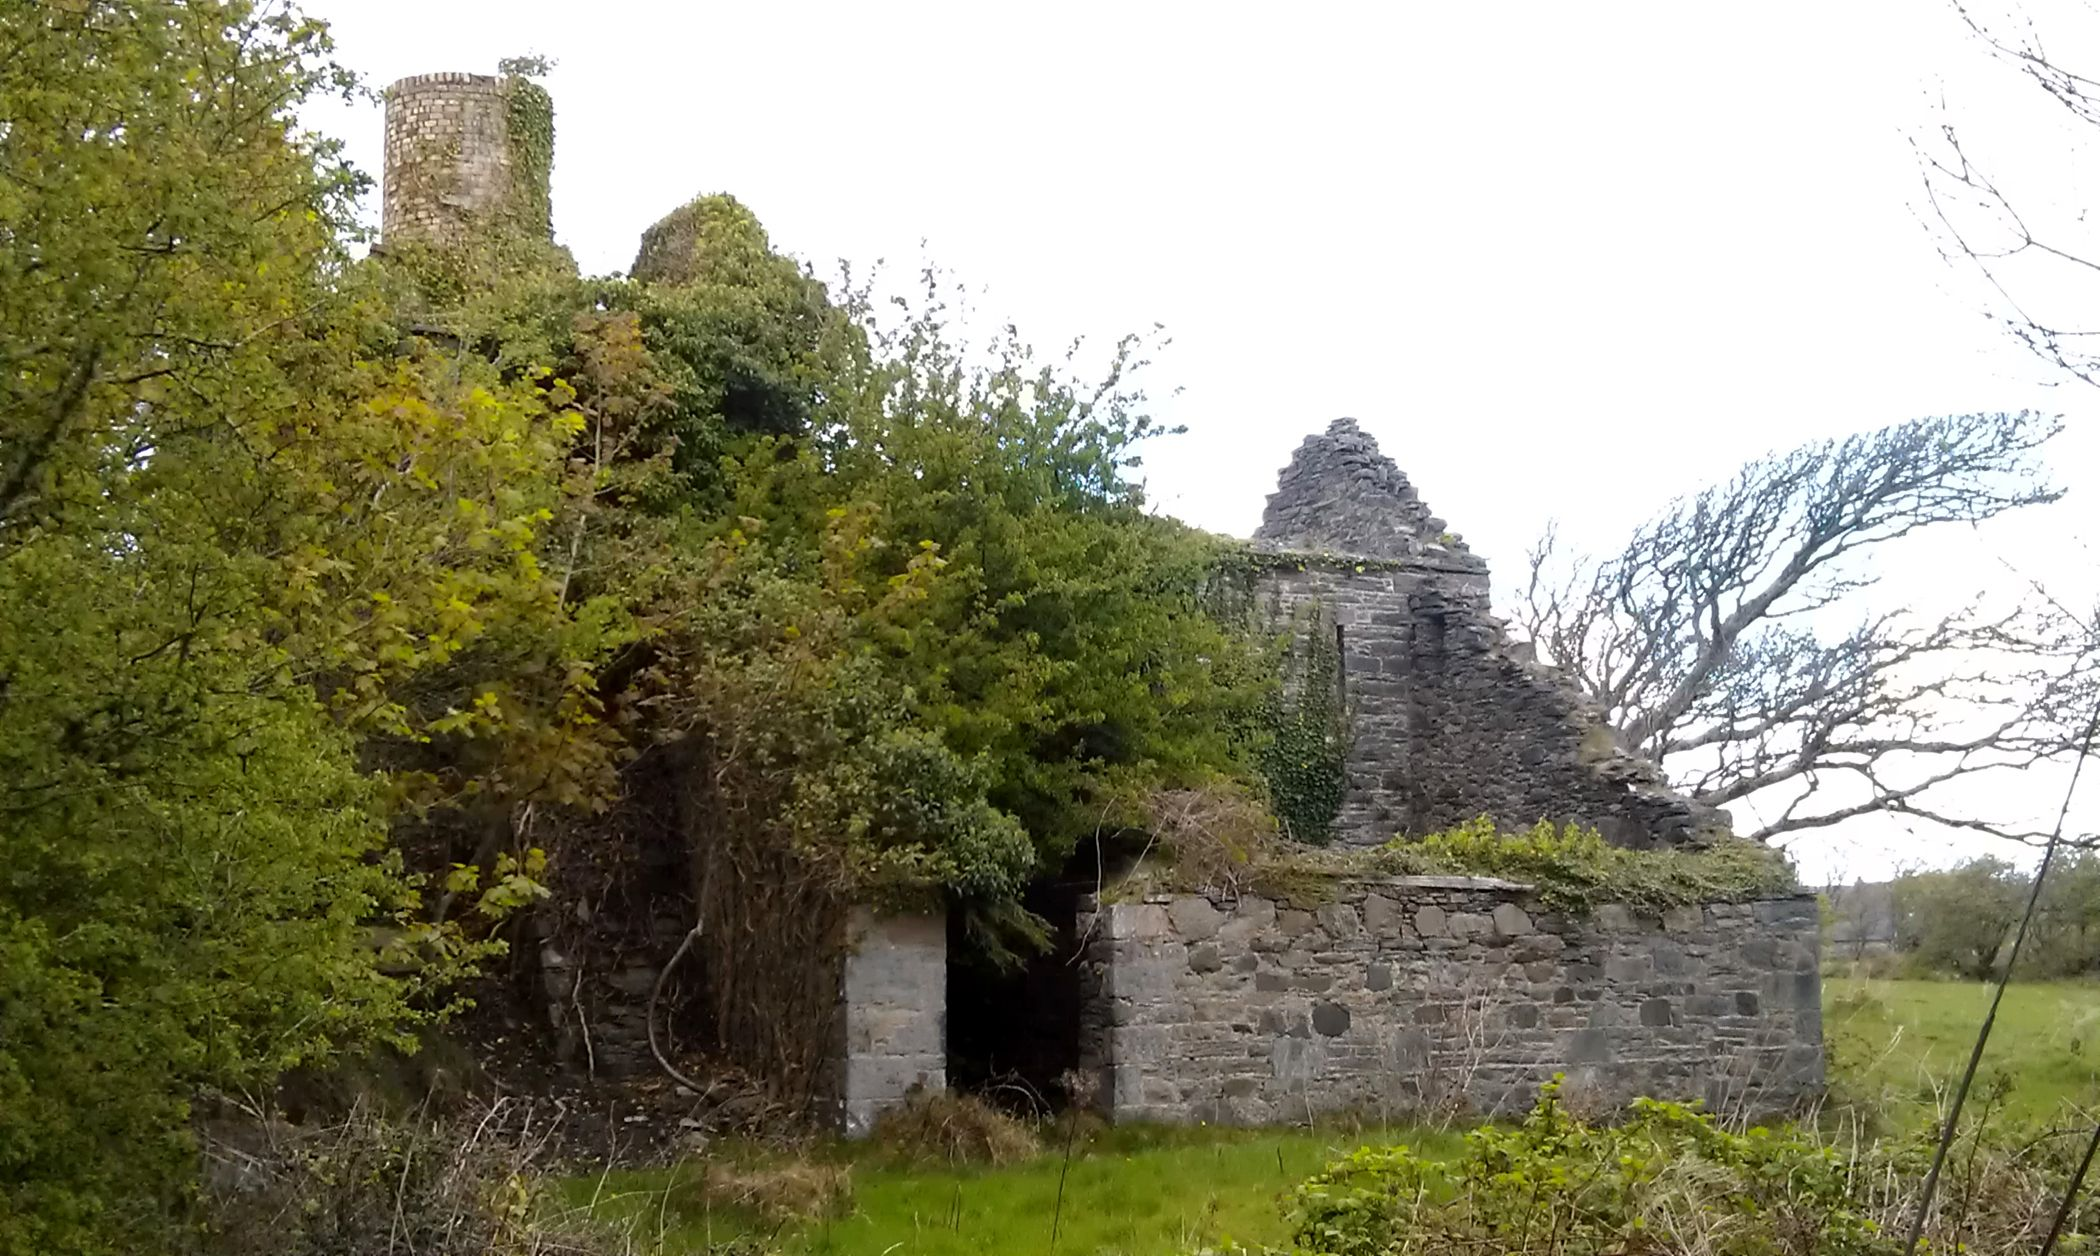 Ruins of the home of Lord Leitrim, cruel landlord murdered